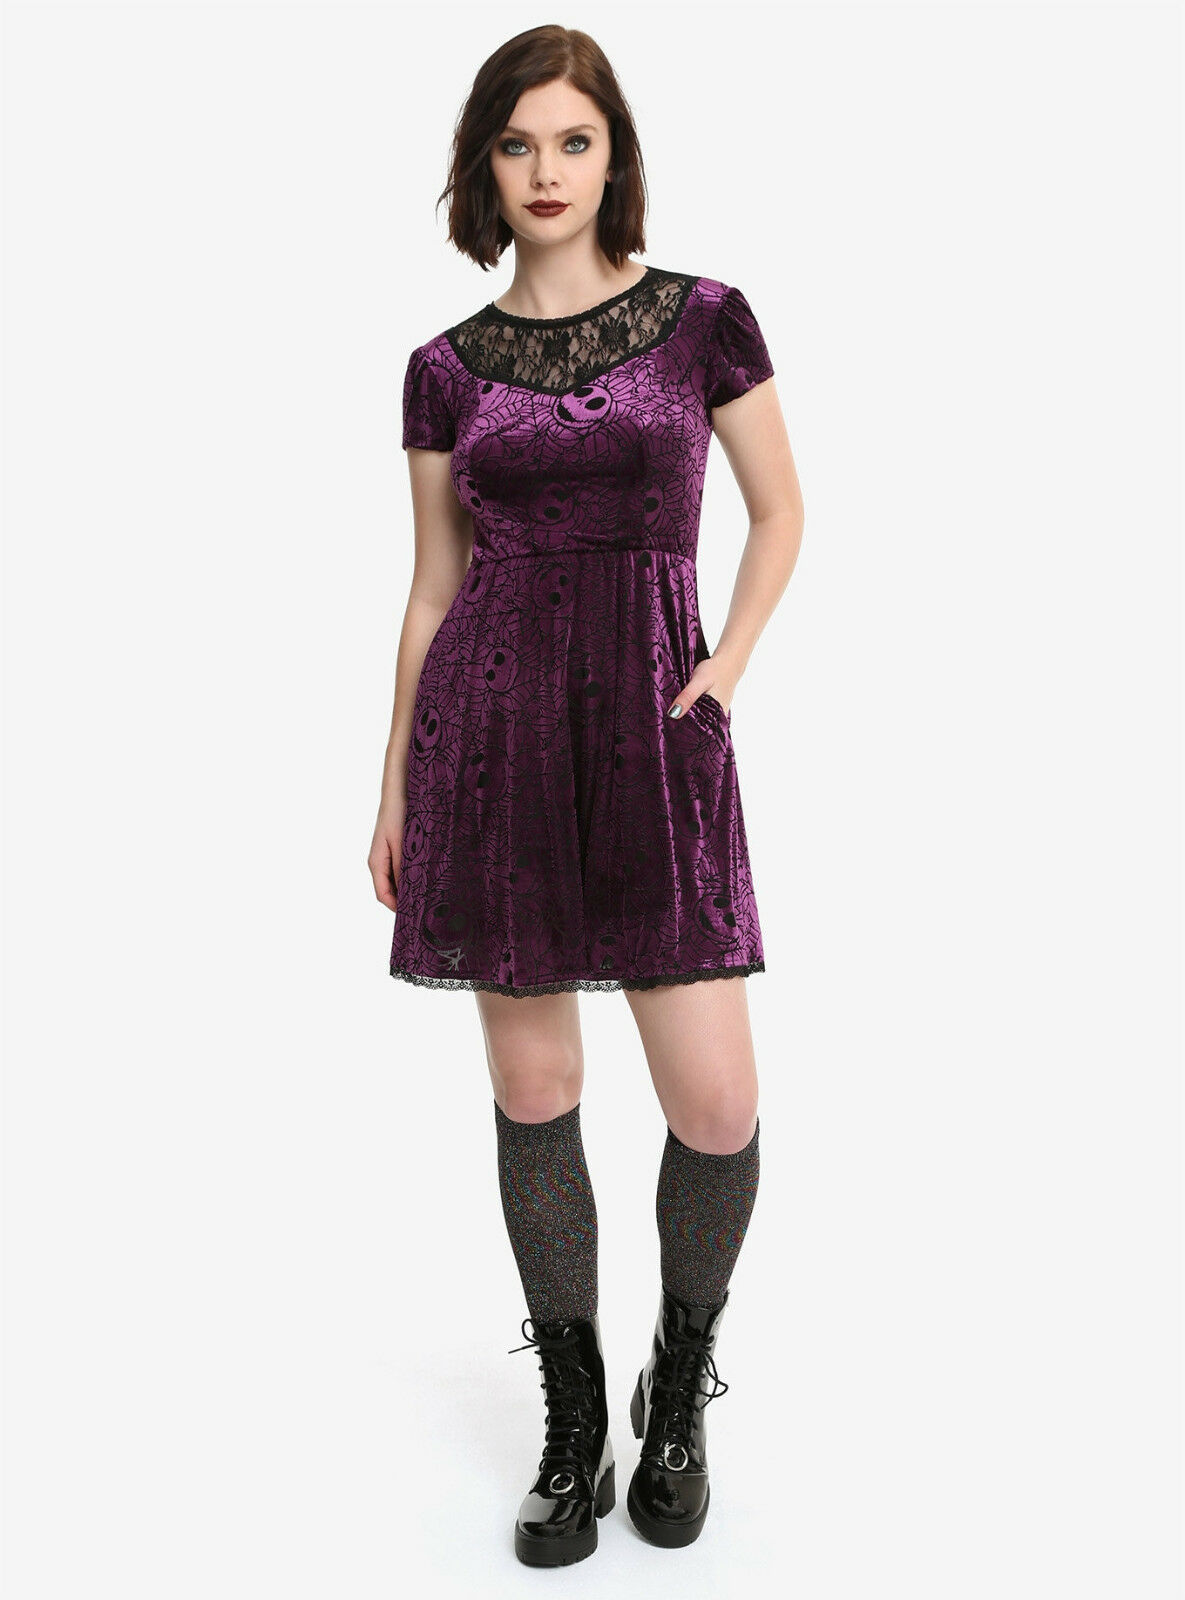 NEW The Nightmare Before Christmas purple web burnout dress, S, M, MSRP  59.90